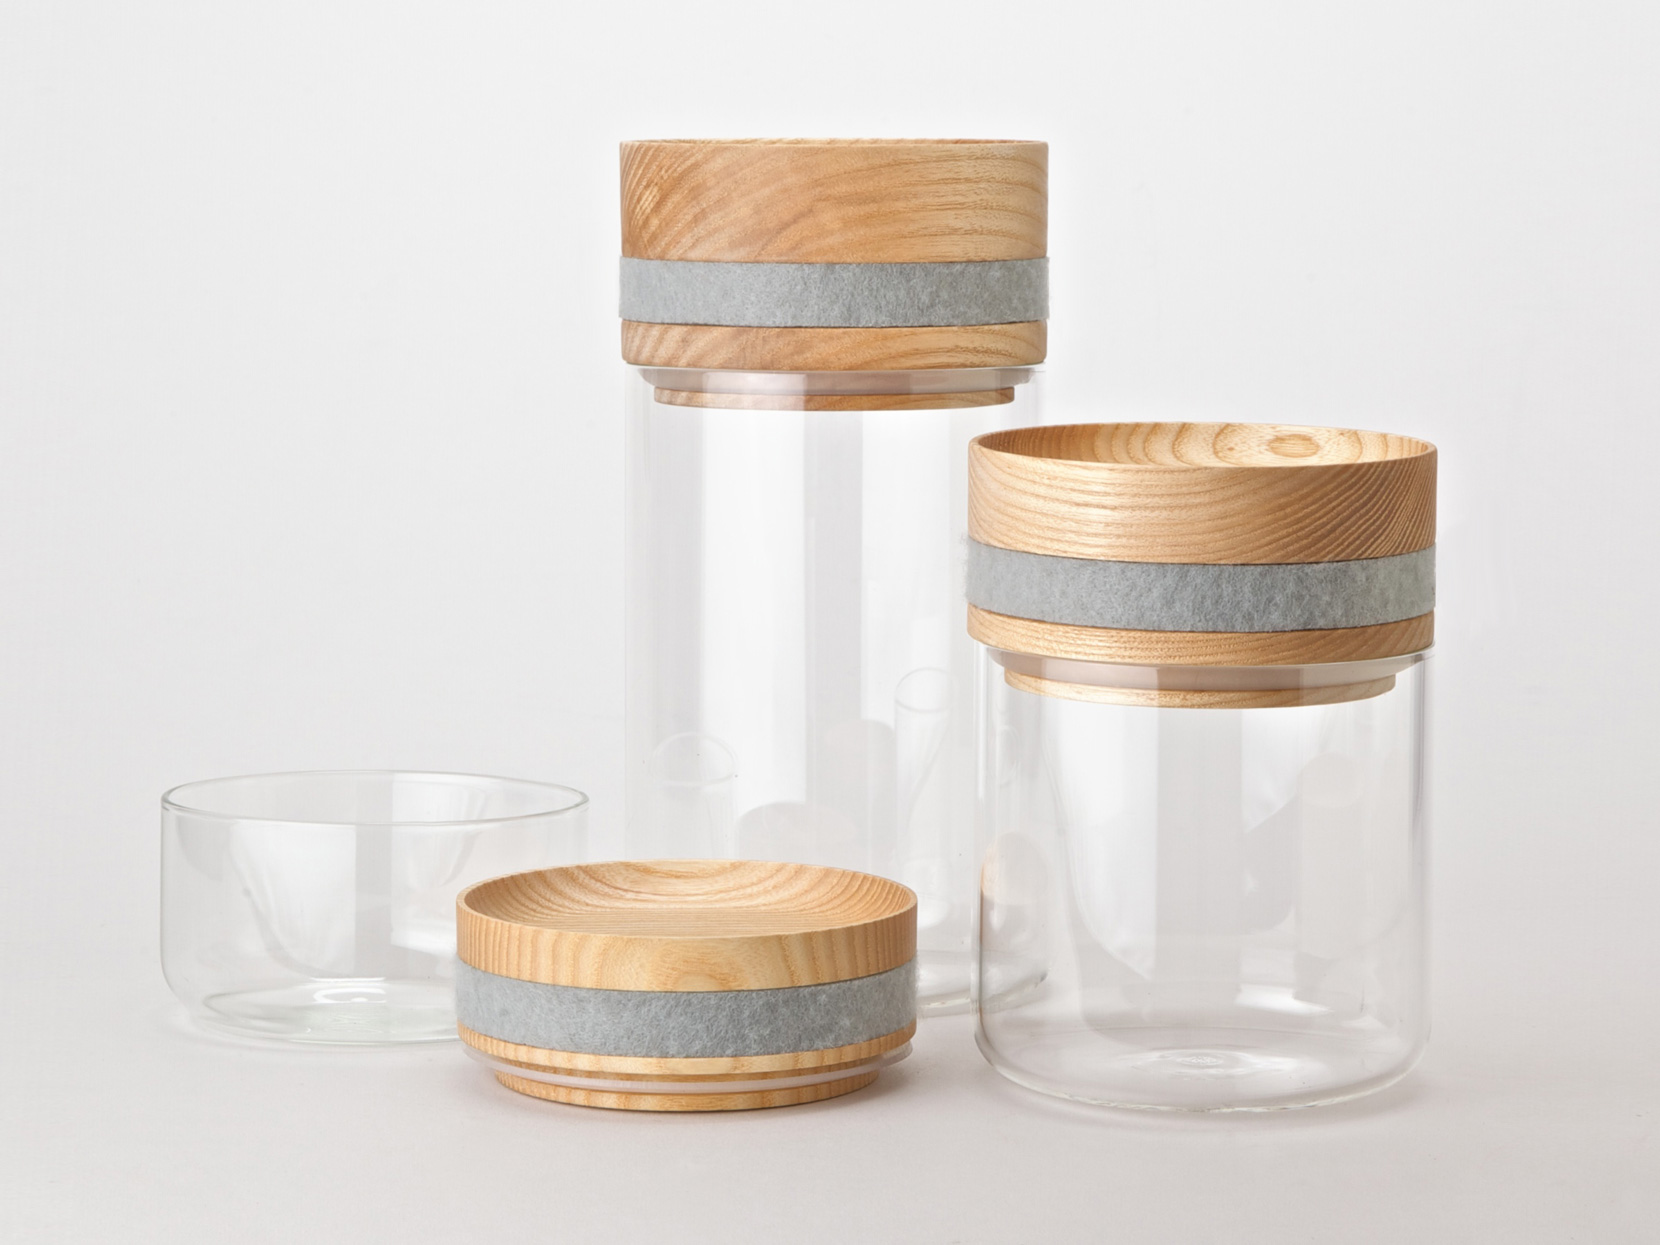 Obtineo minimal storage containers made from glass, ash and grey felt